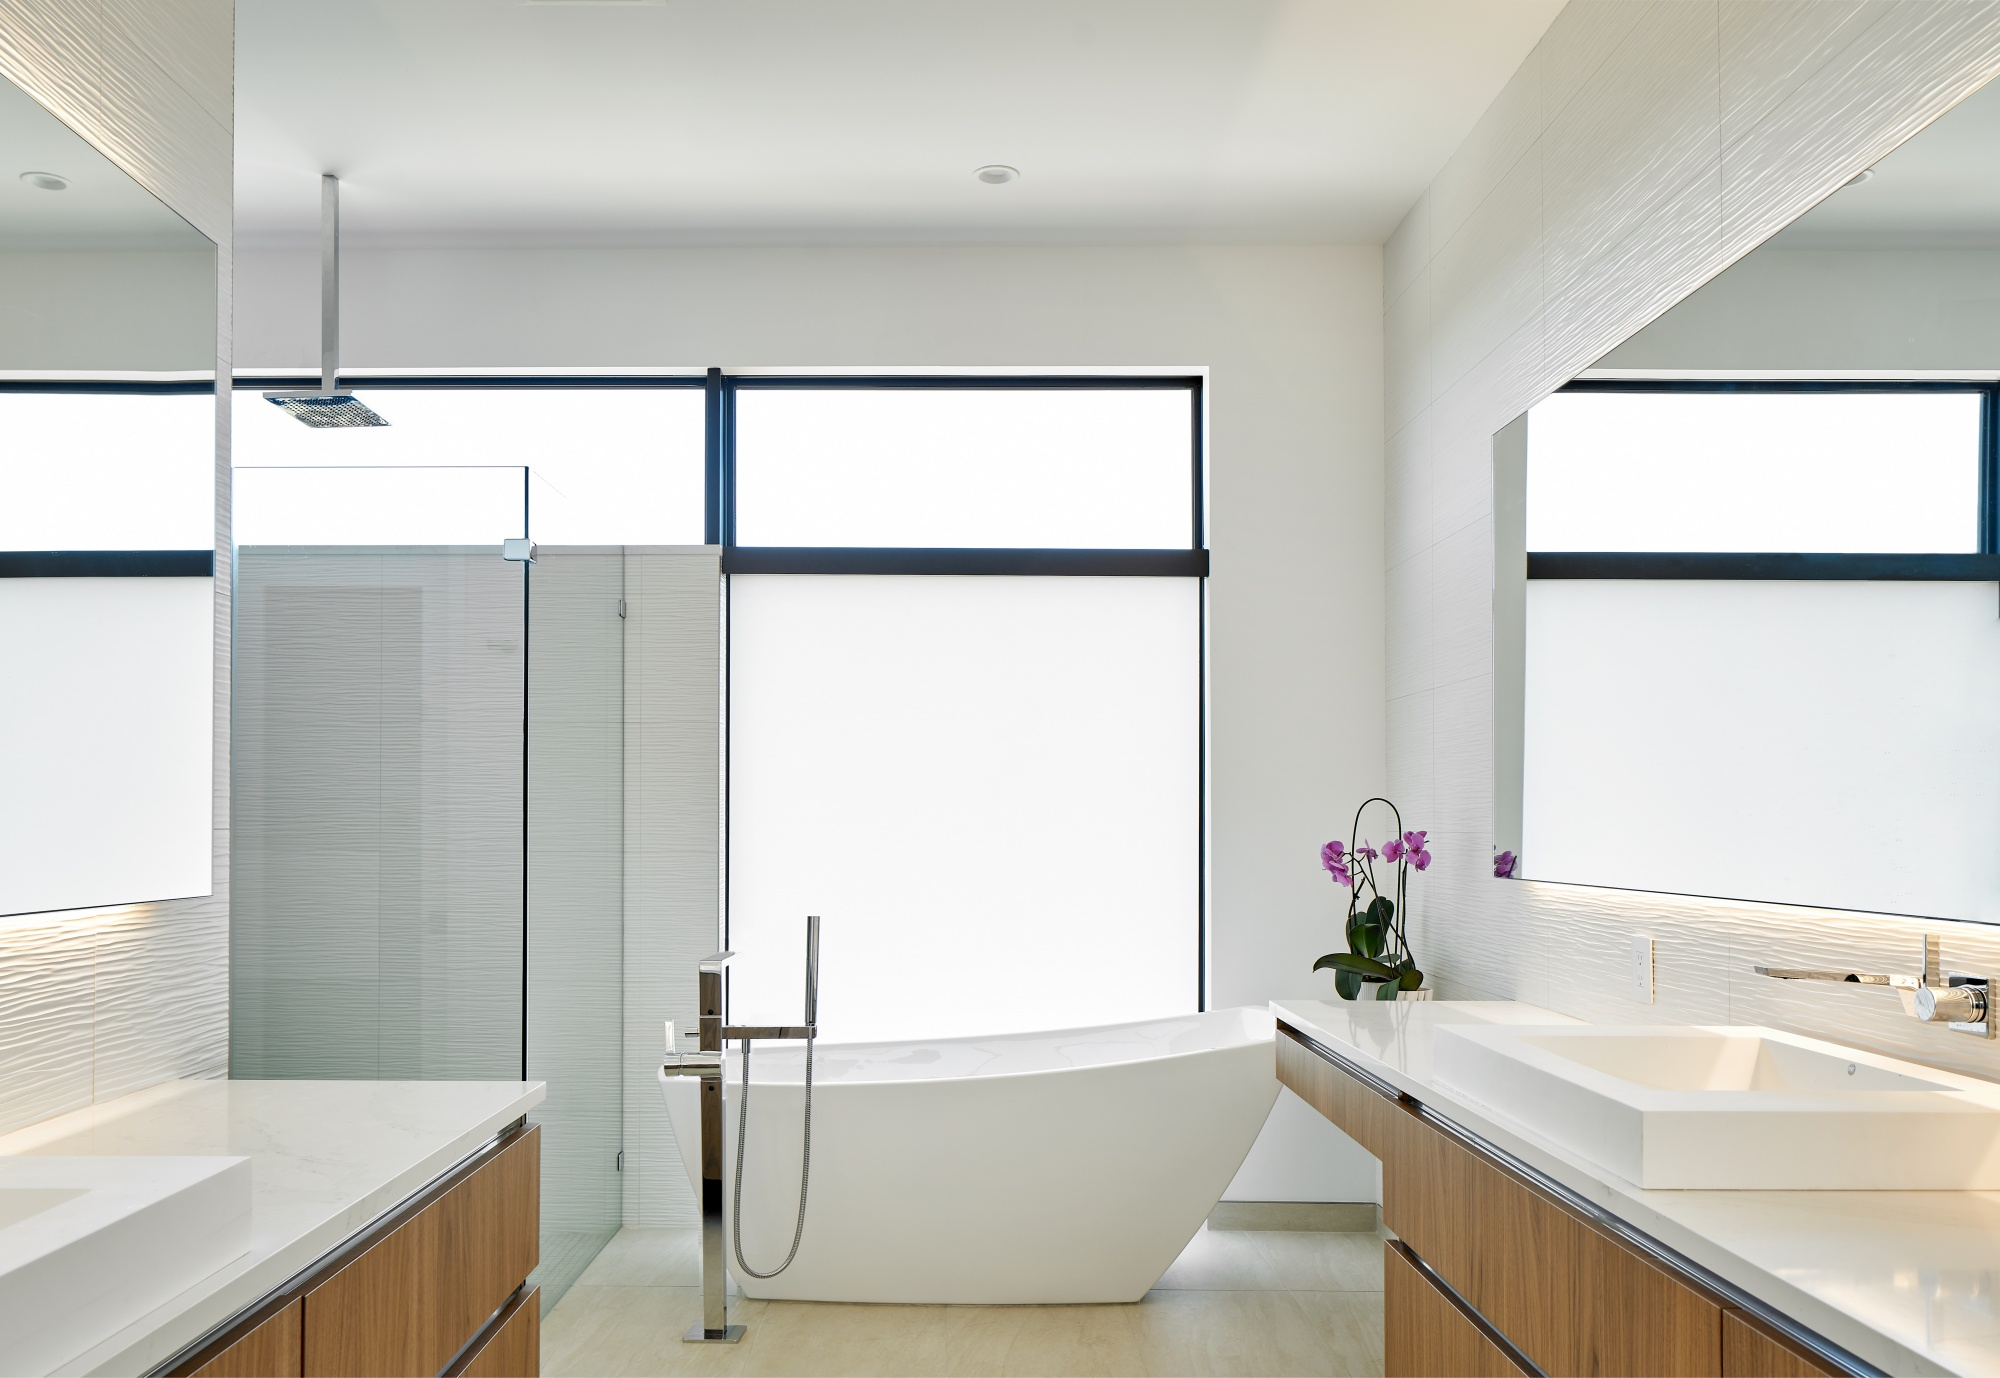 A master bath that provides a quiet and serene environment.